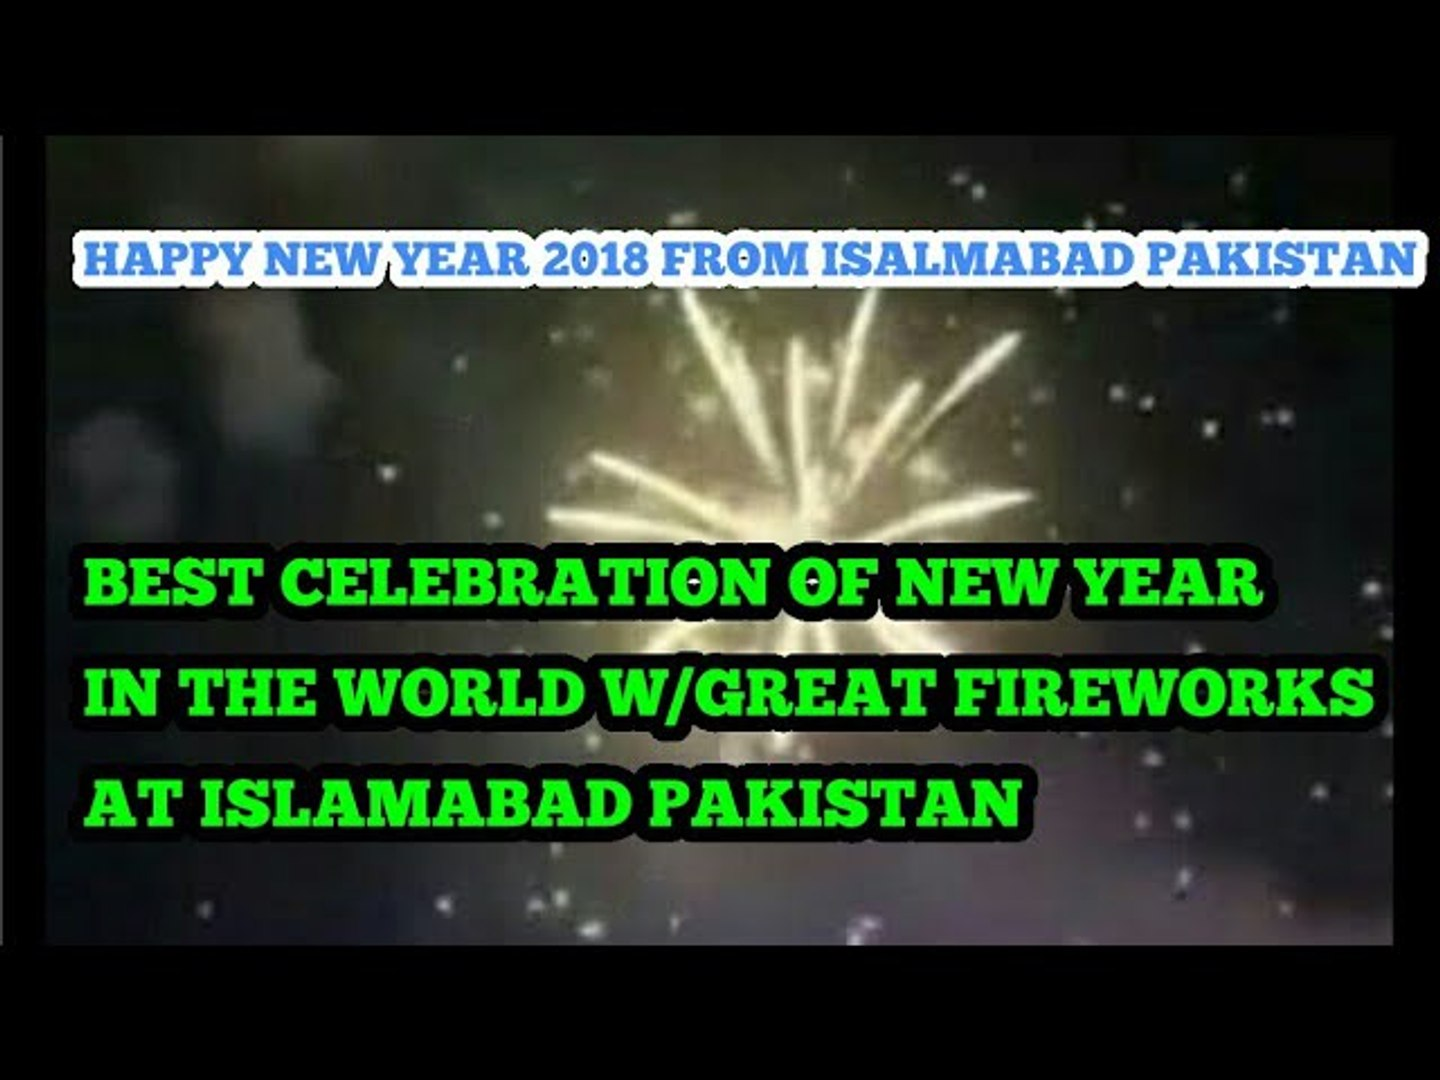 AMAZING FIREWORKS AT HYPERSTAR ISLAMABAD NEW YEAR 2018 CELEBRATION PAKISTAN